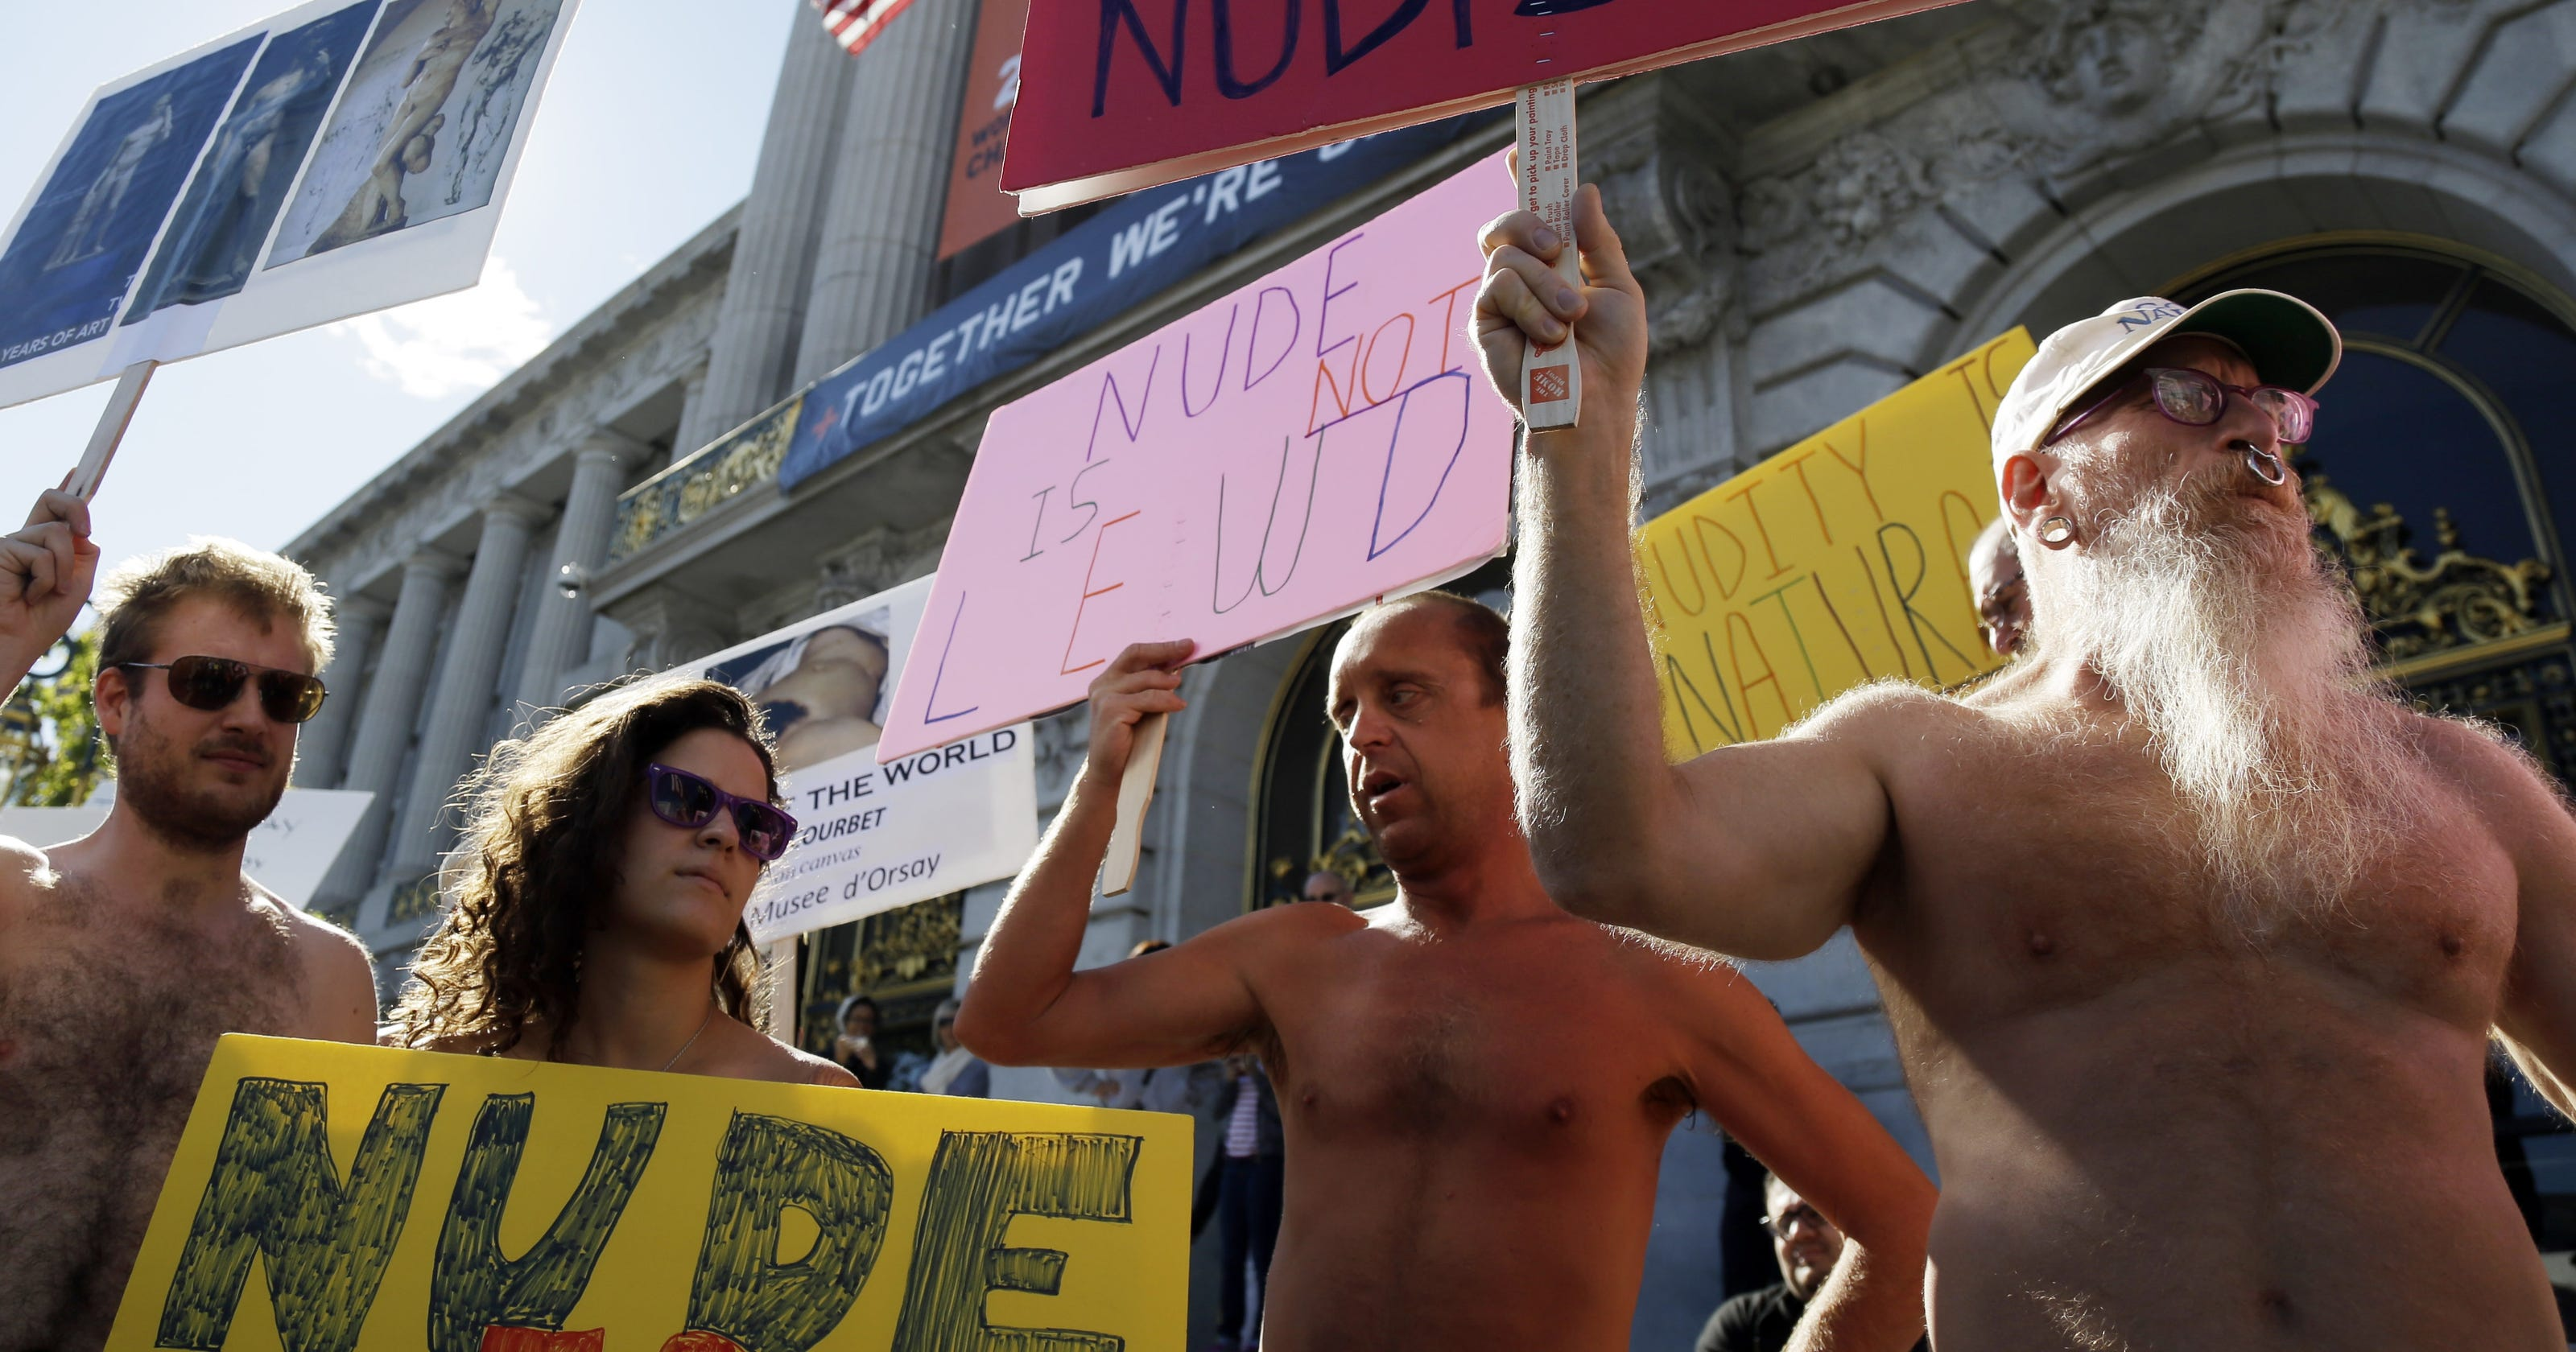 San Francisco Lawmakers Vote To Ban Public Nudity Cloudy Girl Pics